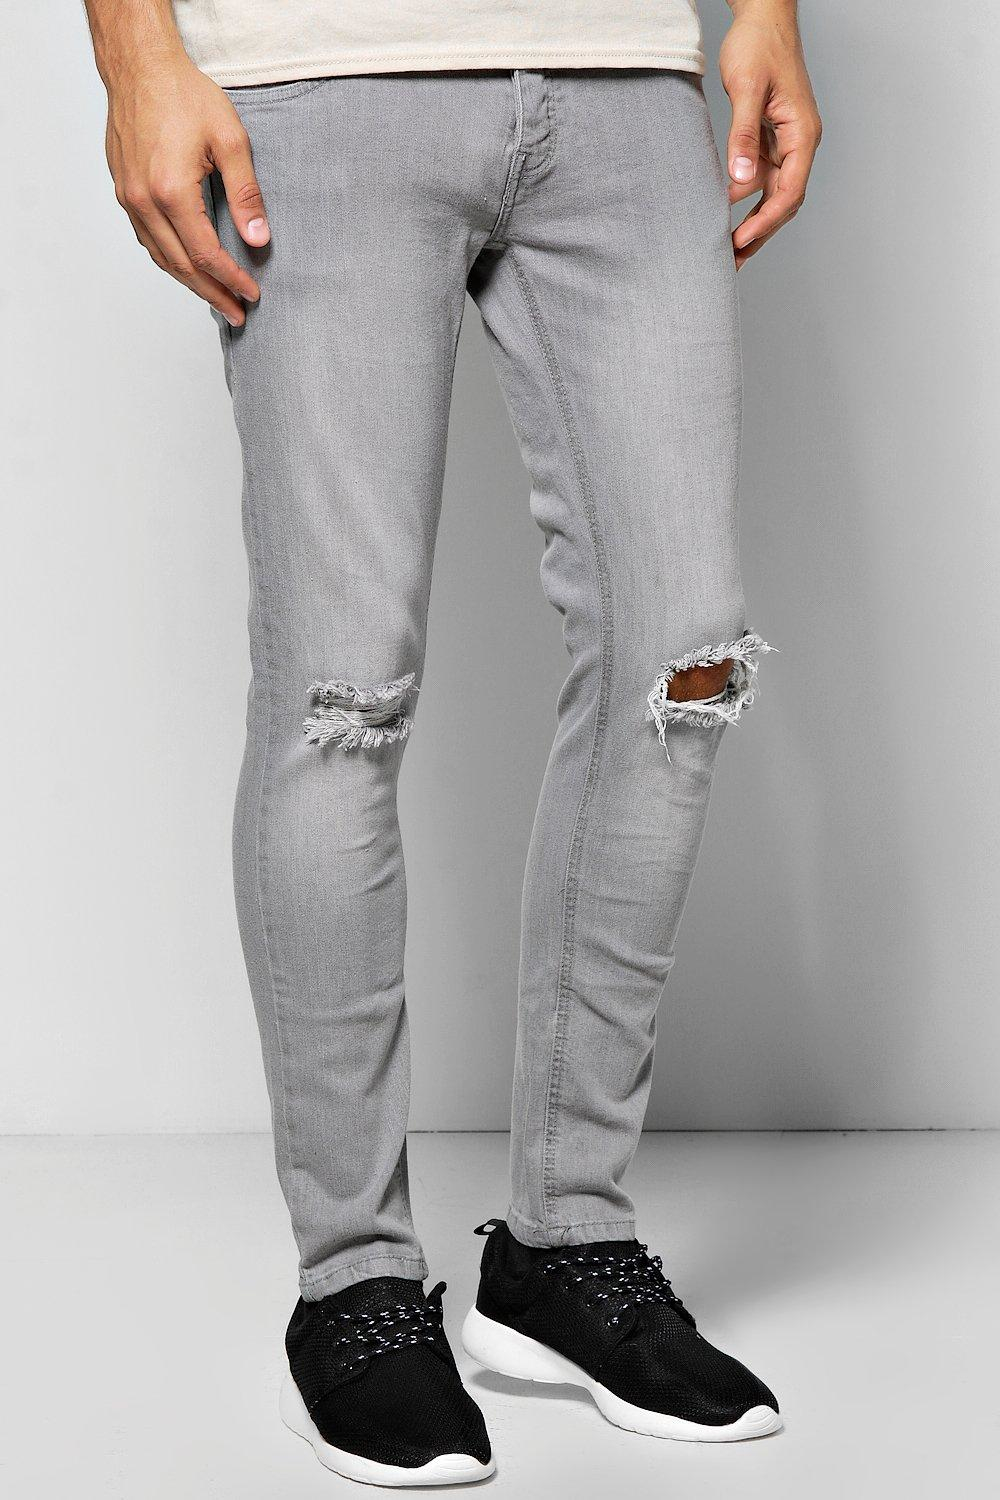 lyst  boohoo skinny fit distressed grey jeans in gray for men